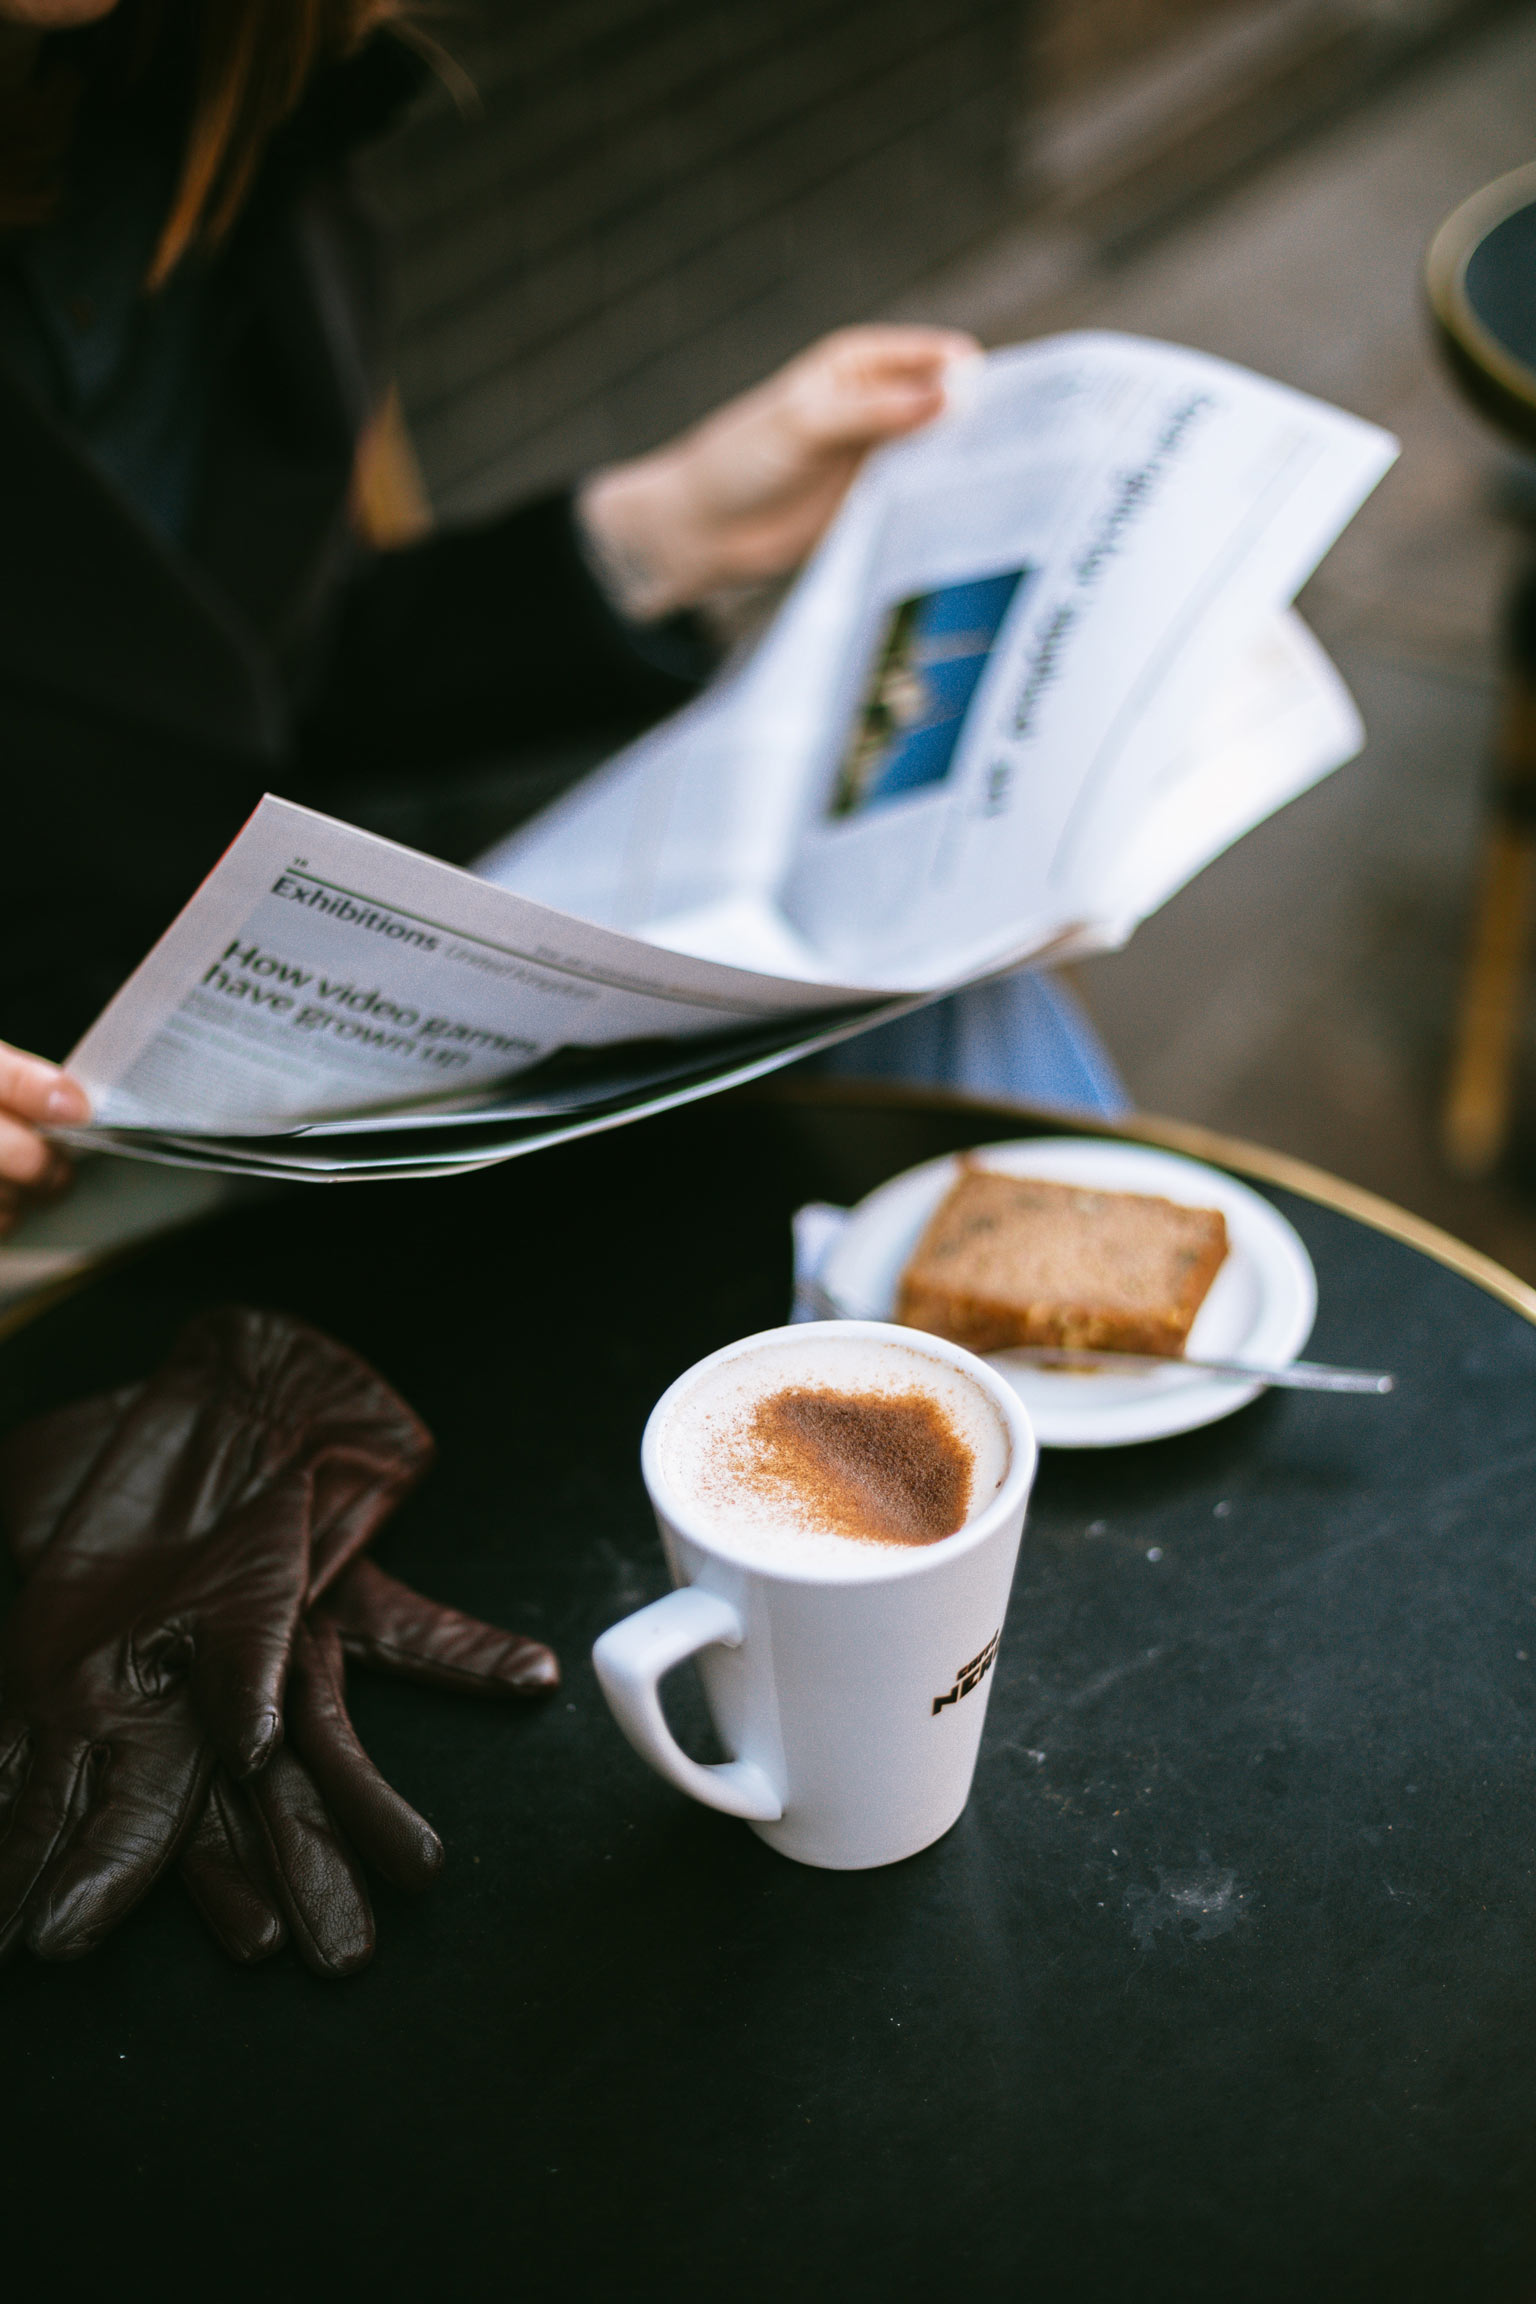 Person reading newspaper with coffee and cake